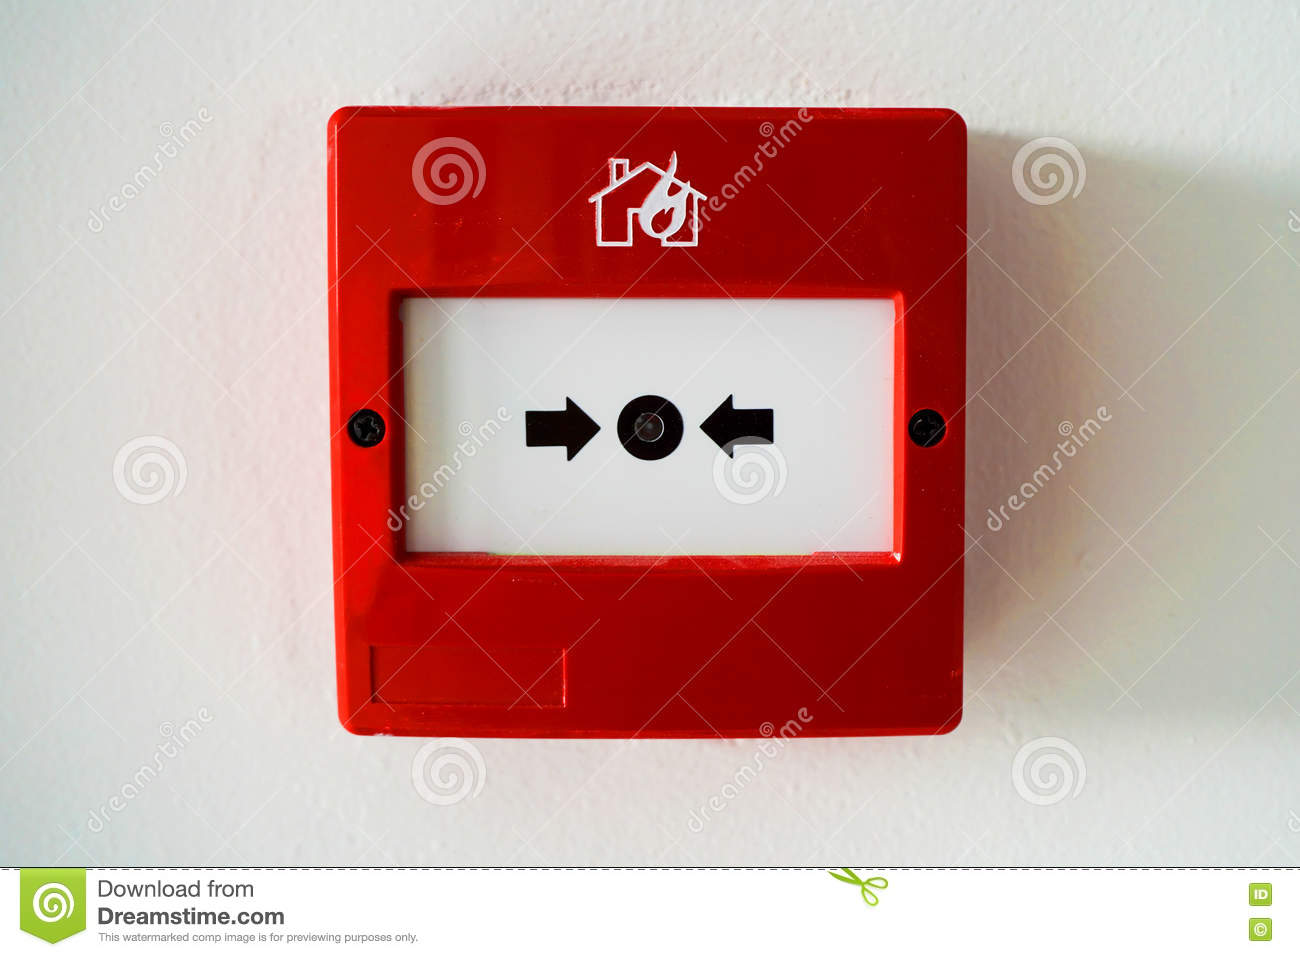 Fire Safetylogbook2012 also Pfdsymbols moreover Electrical Element together with Service additionally Products. on smoke or fire detector with automatic water sprinkler system